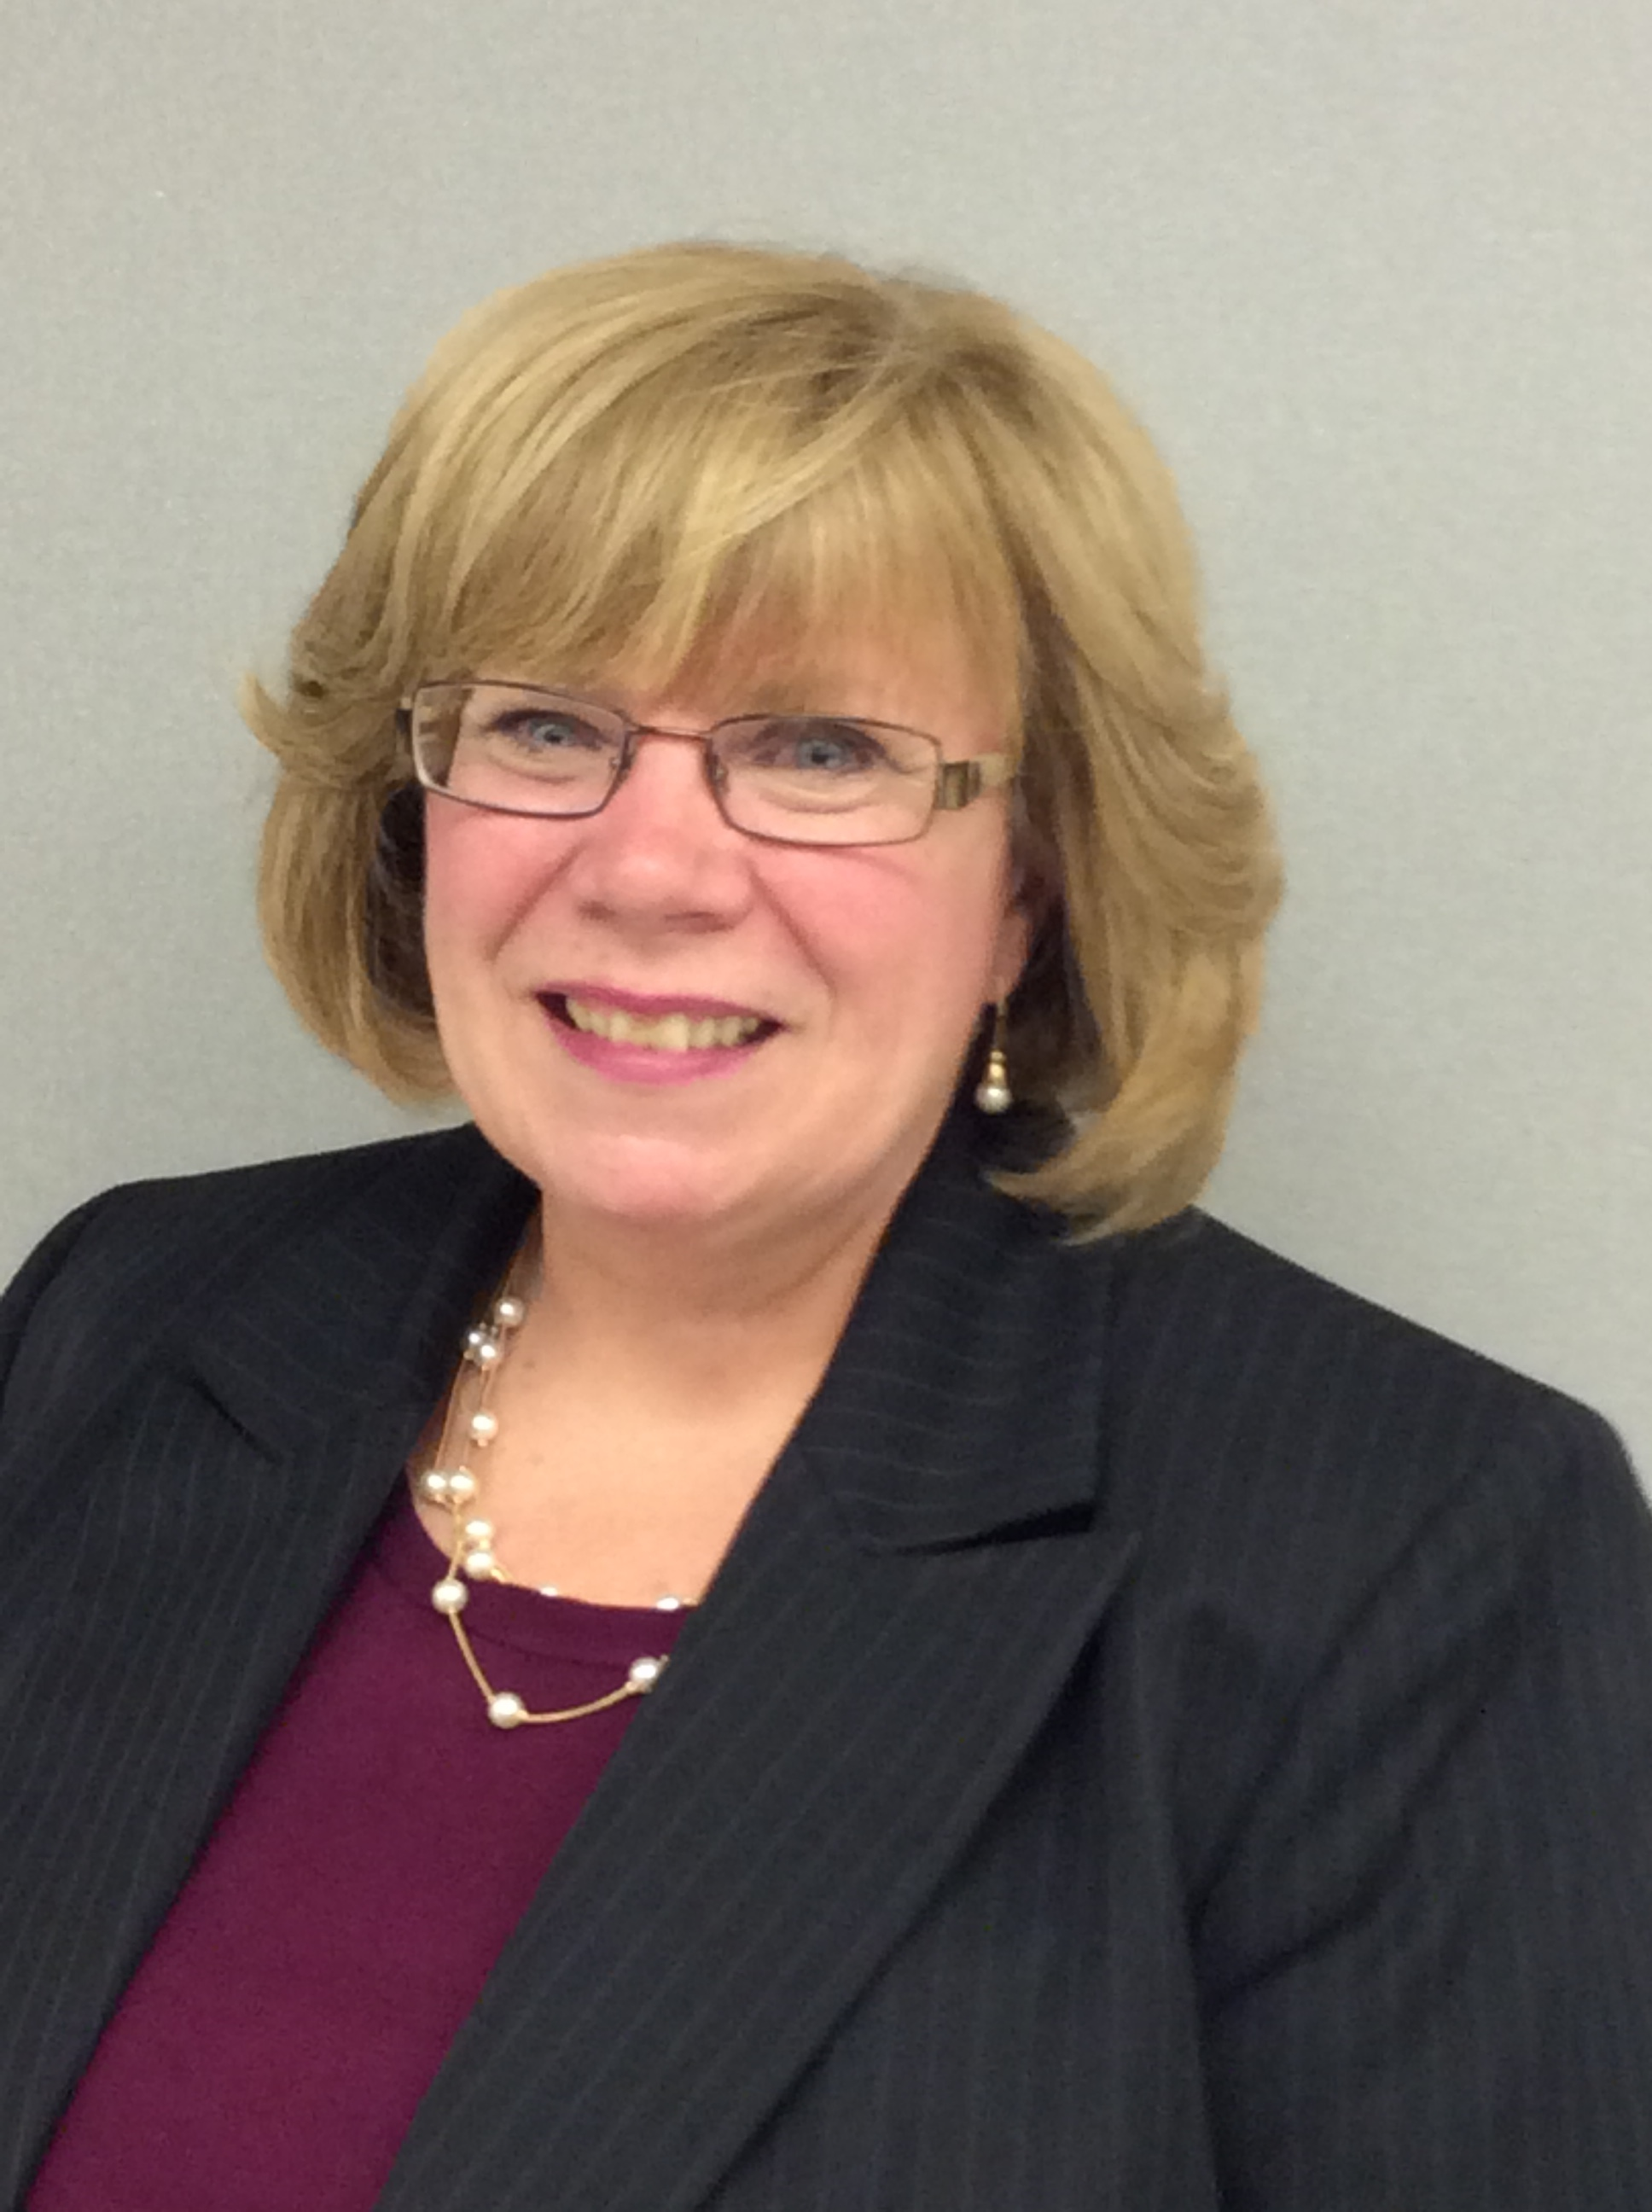 Brick Woman Somerset County School Adminstrator Picked As